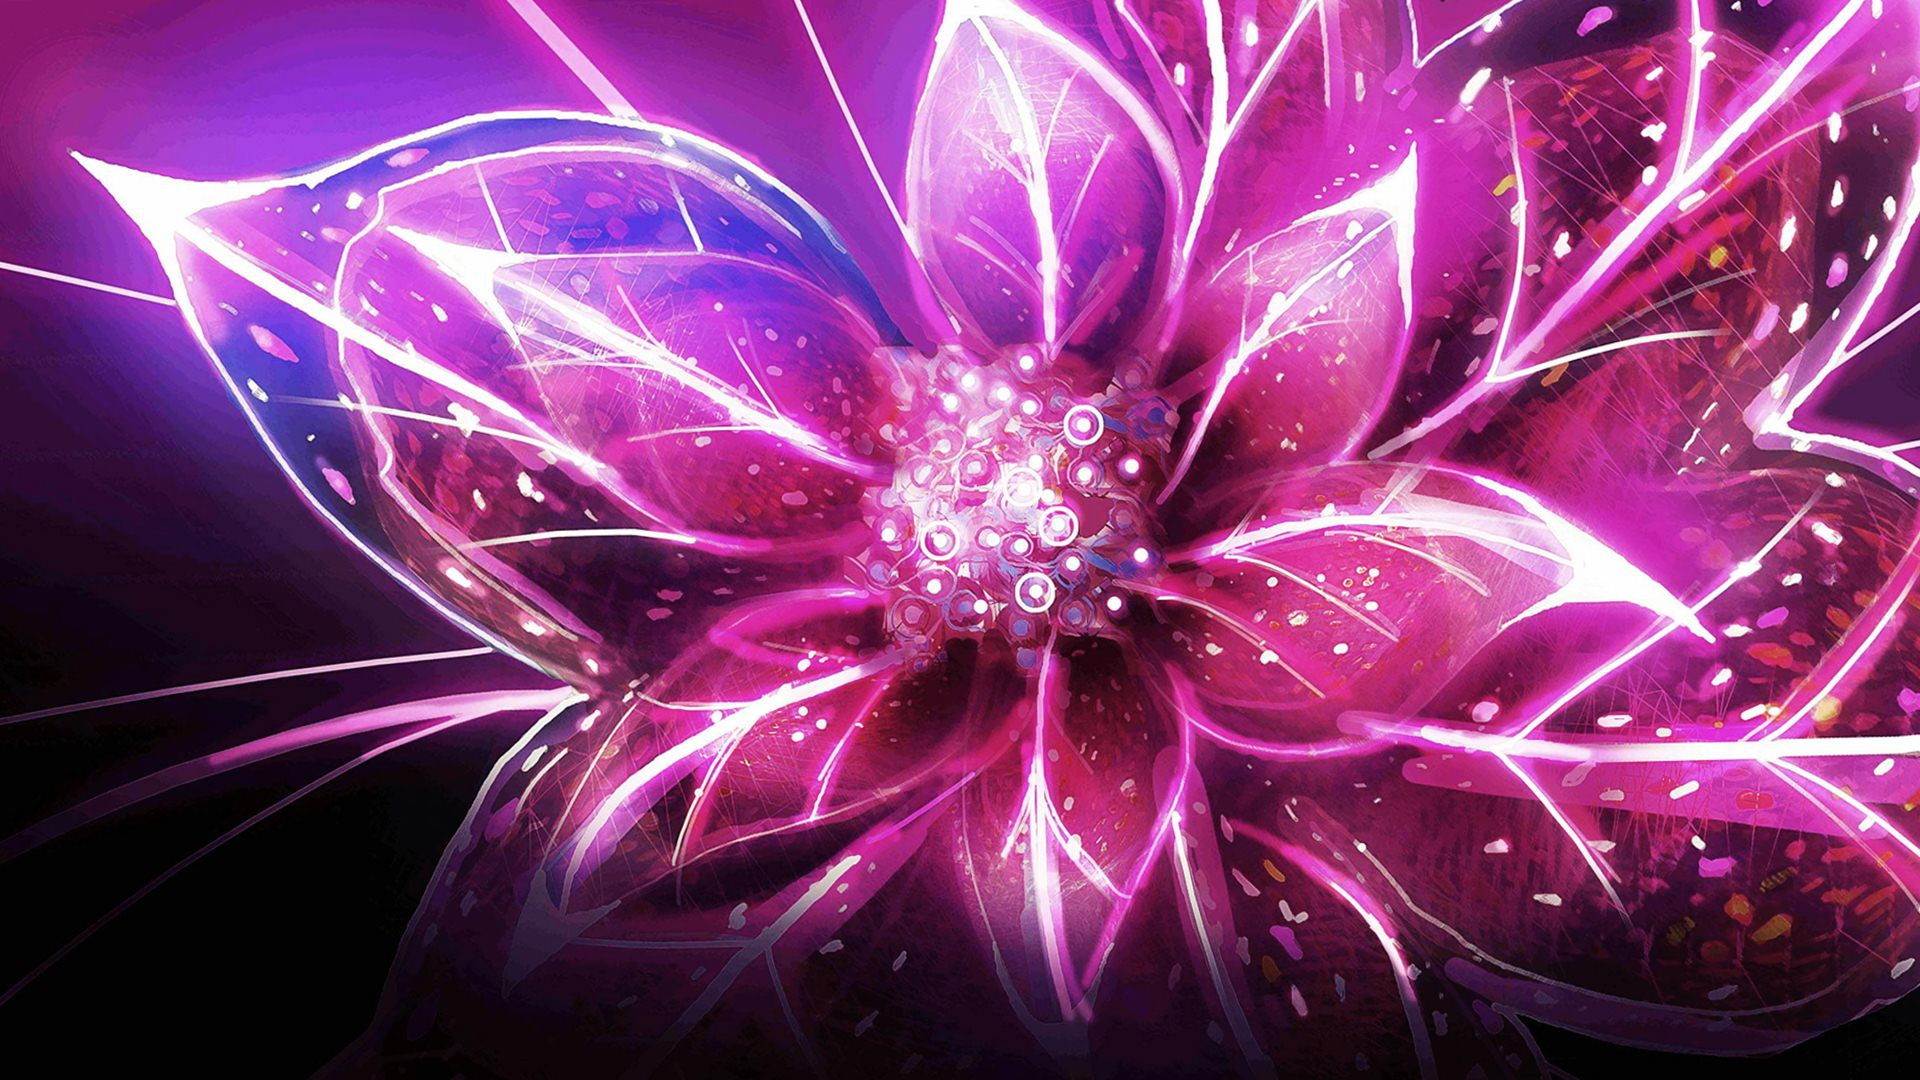 3D Flower Desktop Wallpaper - WallpaperSafari